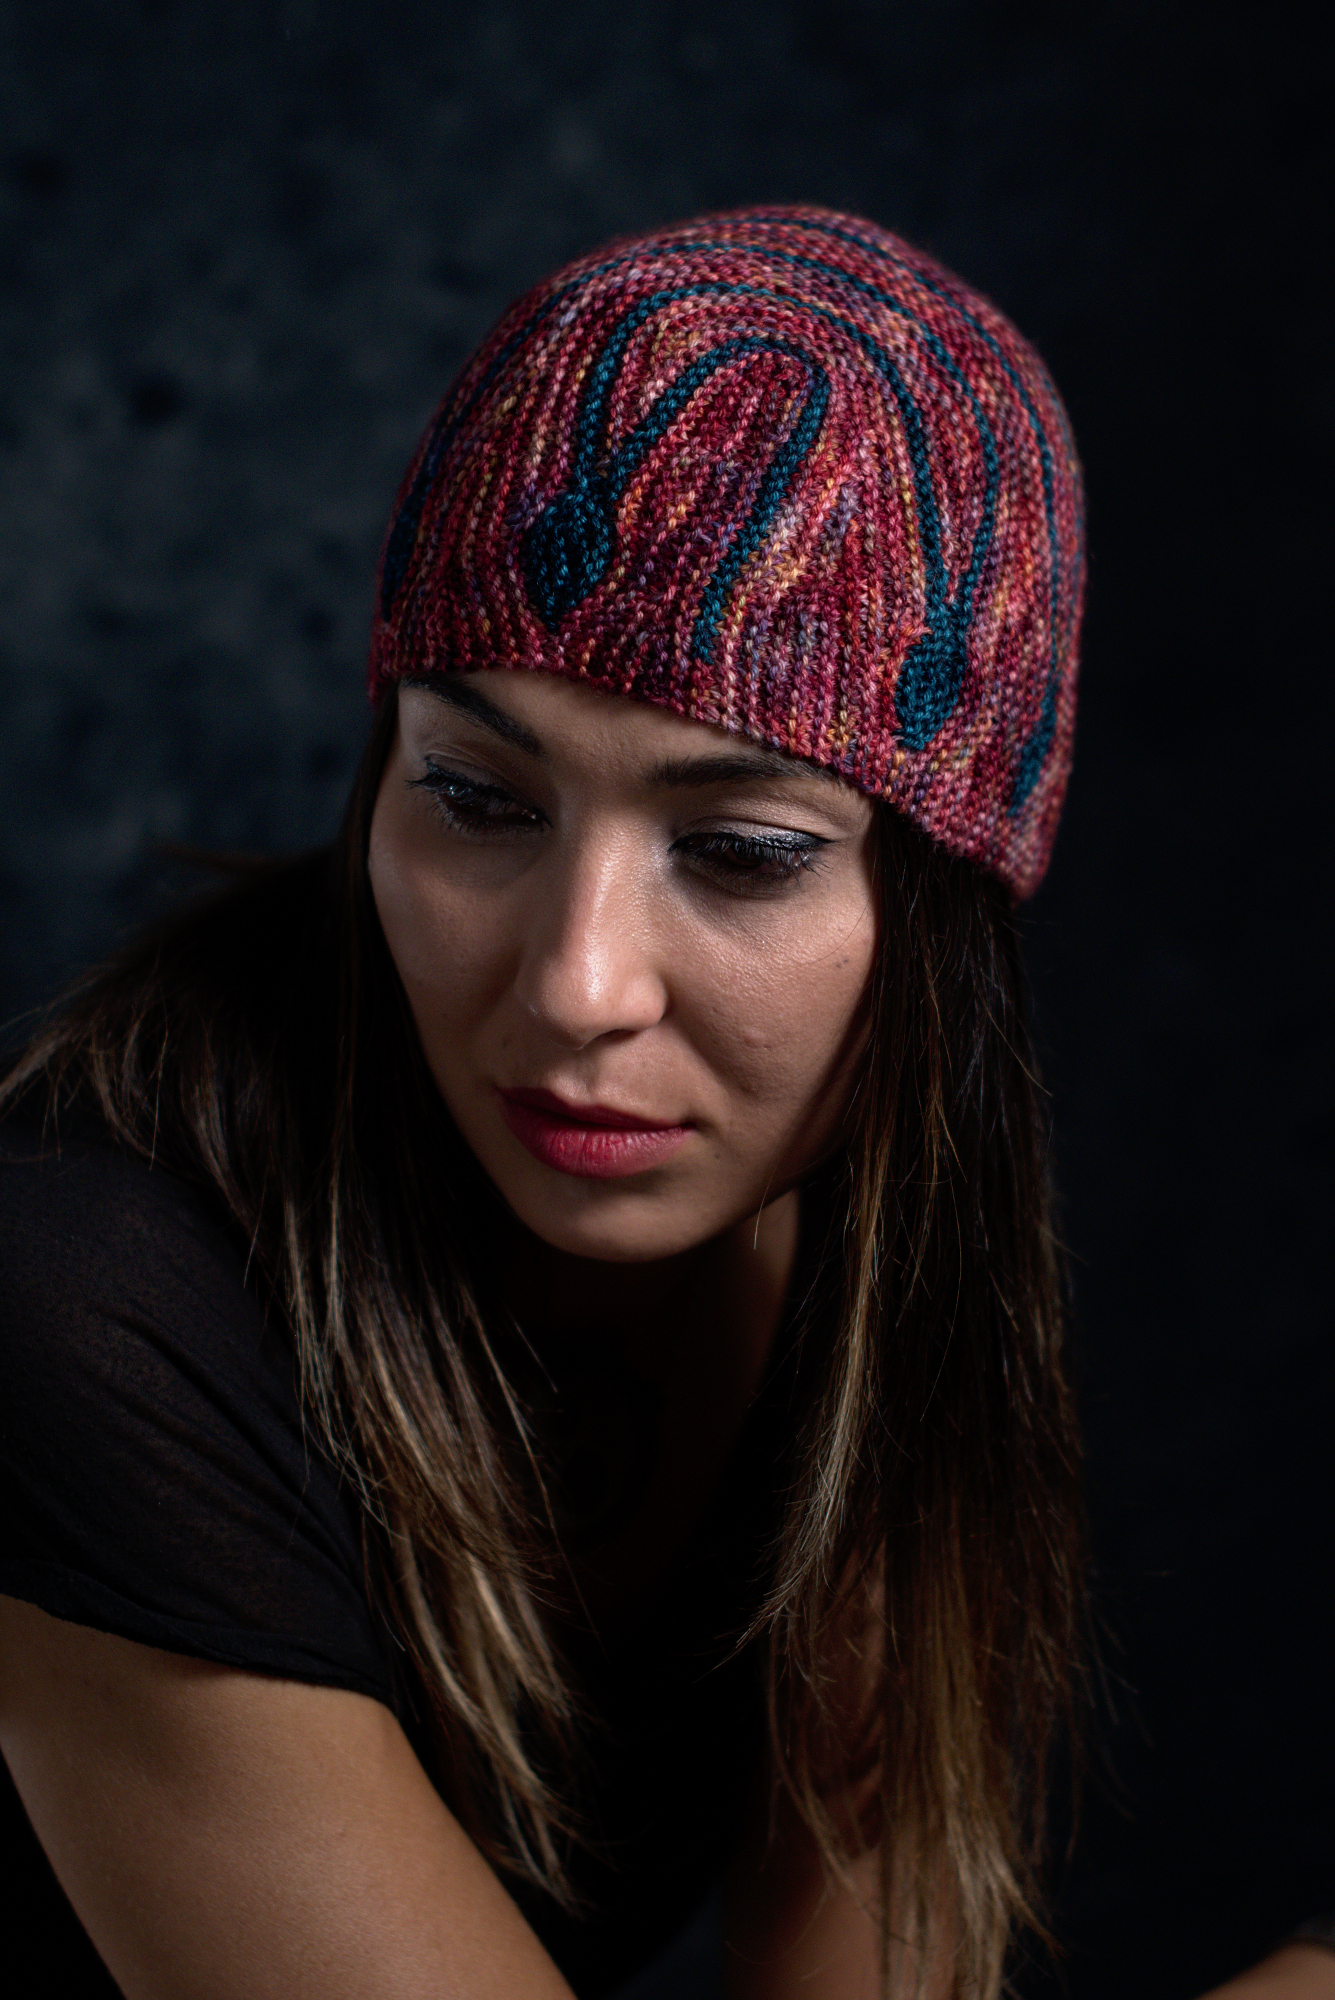 Oscillare sideways knit short row colourwork hat knitting pattern